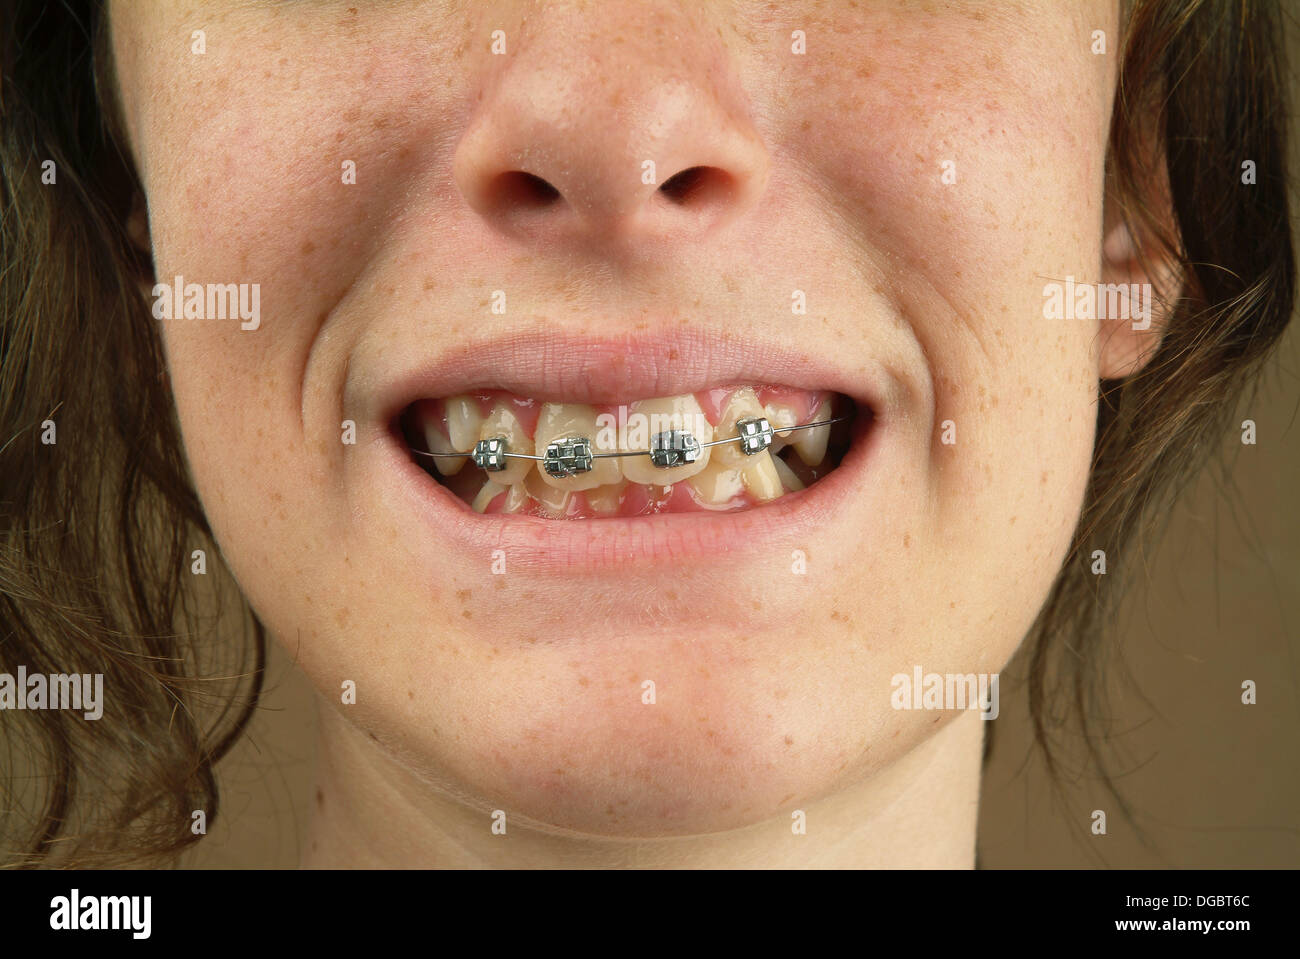 how to make fake braces that look real at home